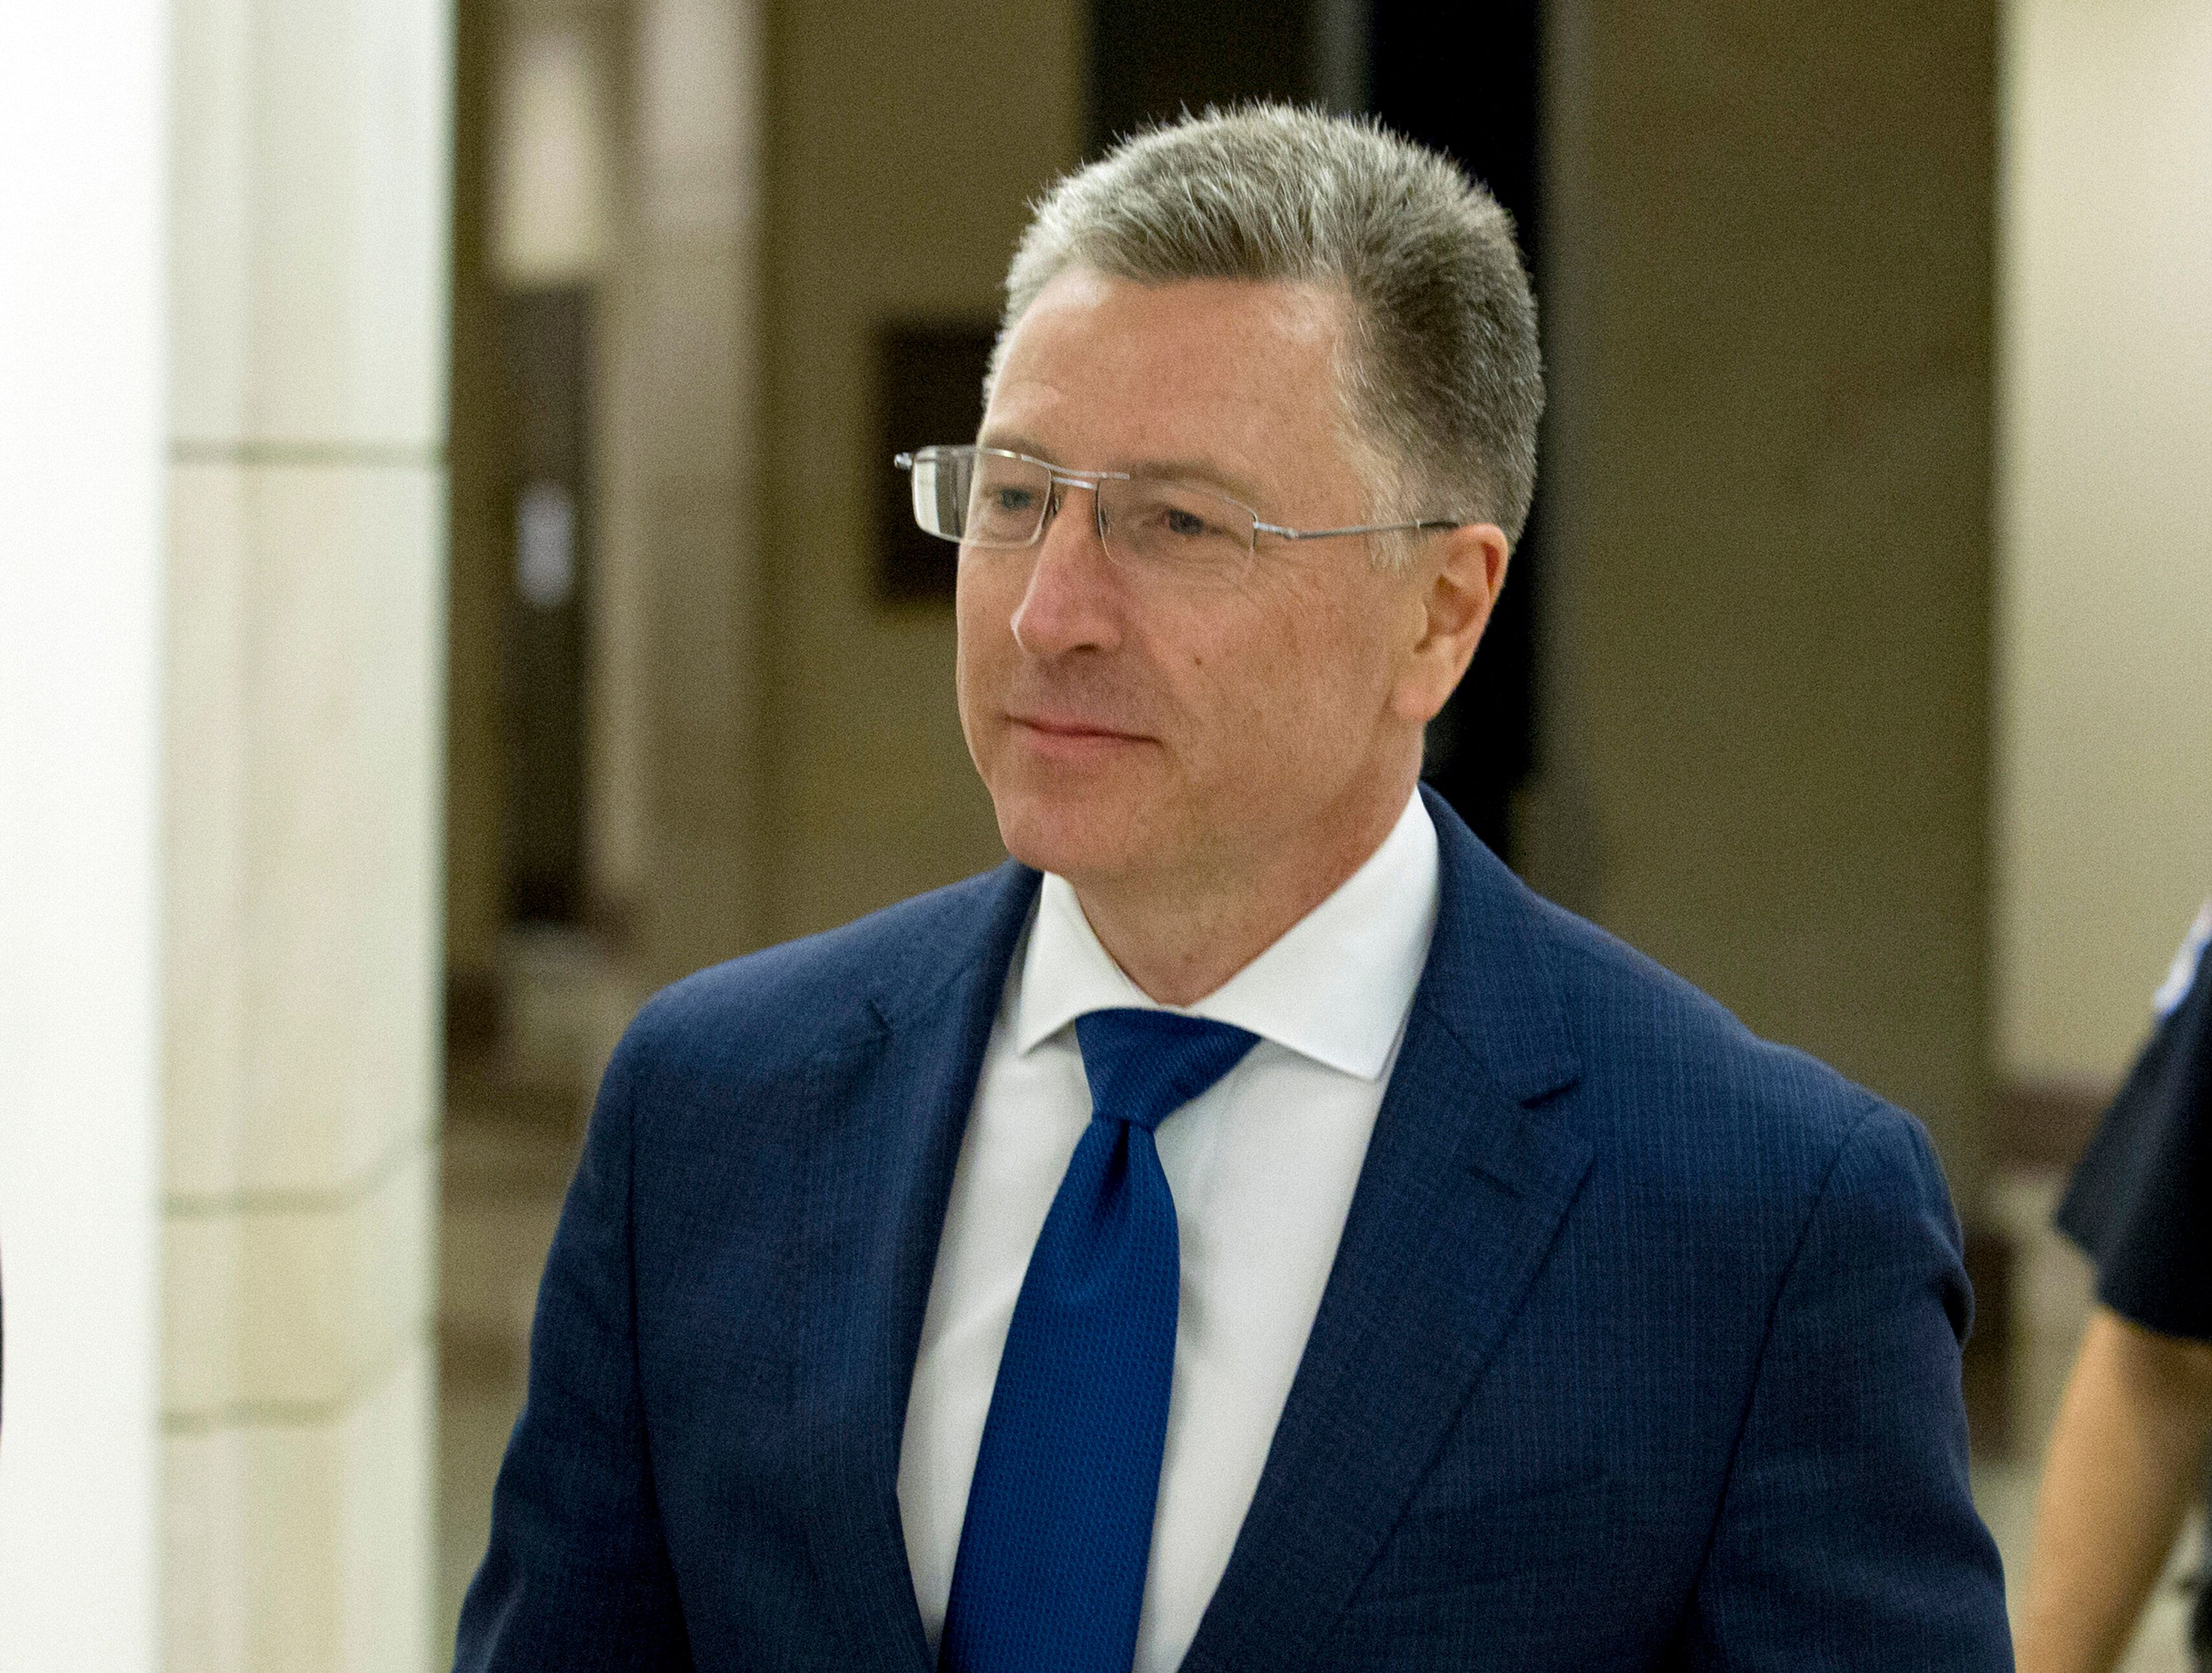 Kurt Volker, a former special envoy to Ukraine, leaves an Oct. 7 closed-door interview with House investigators as House Demo